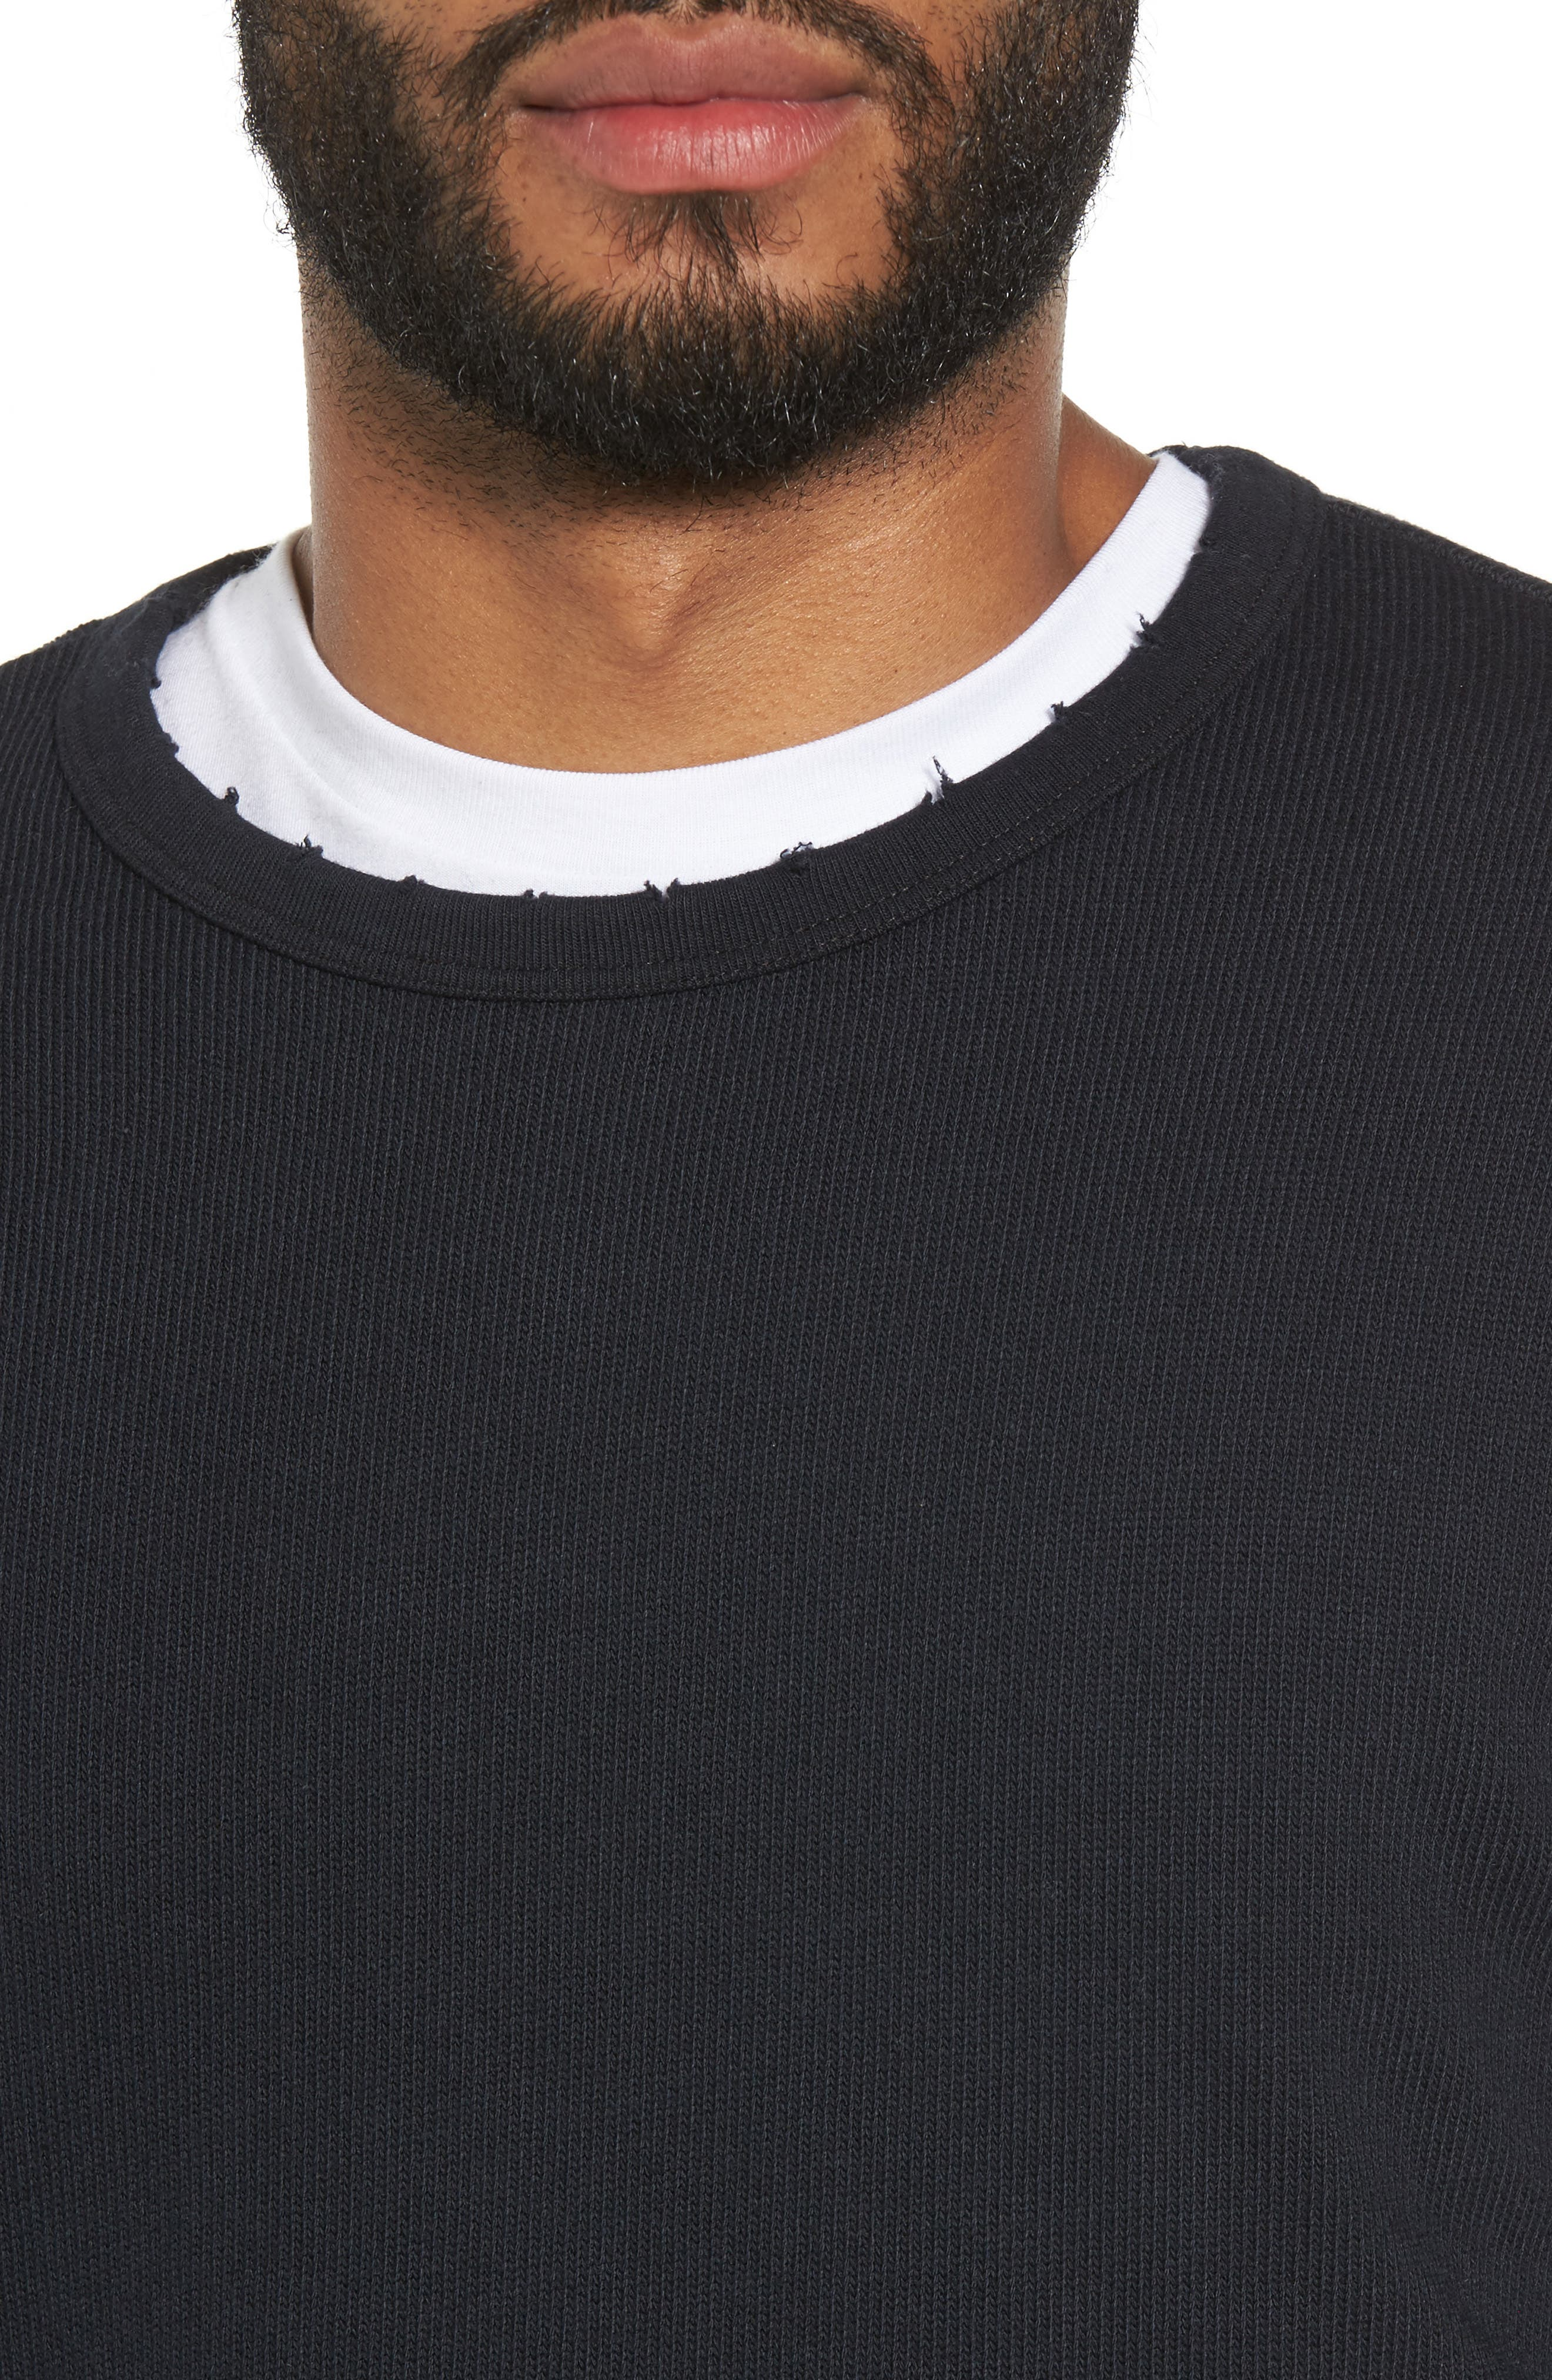 Crewneck Pullover,                             Alternate thumbnail 7, color,